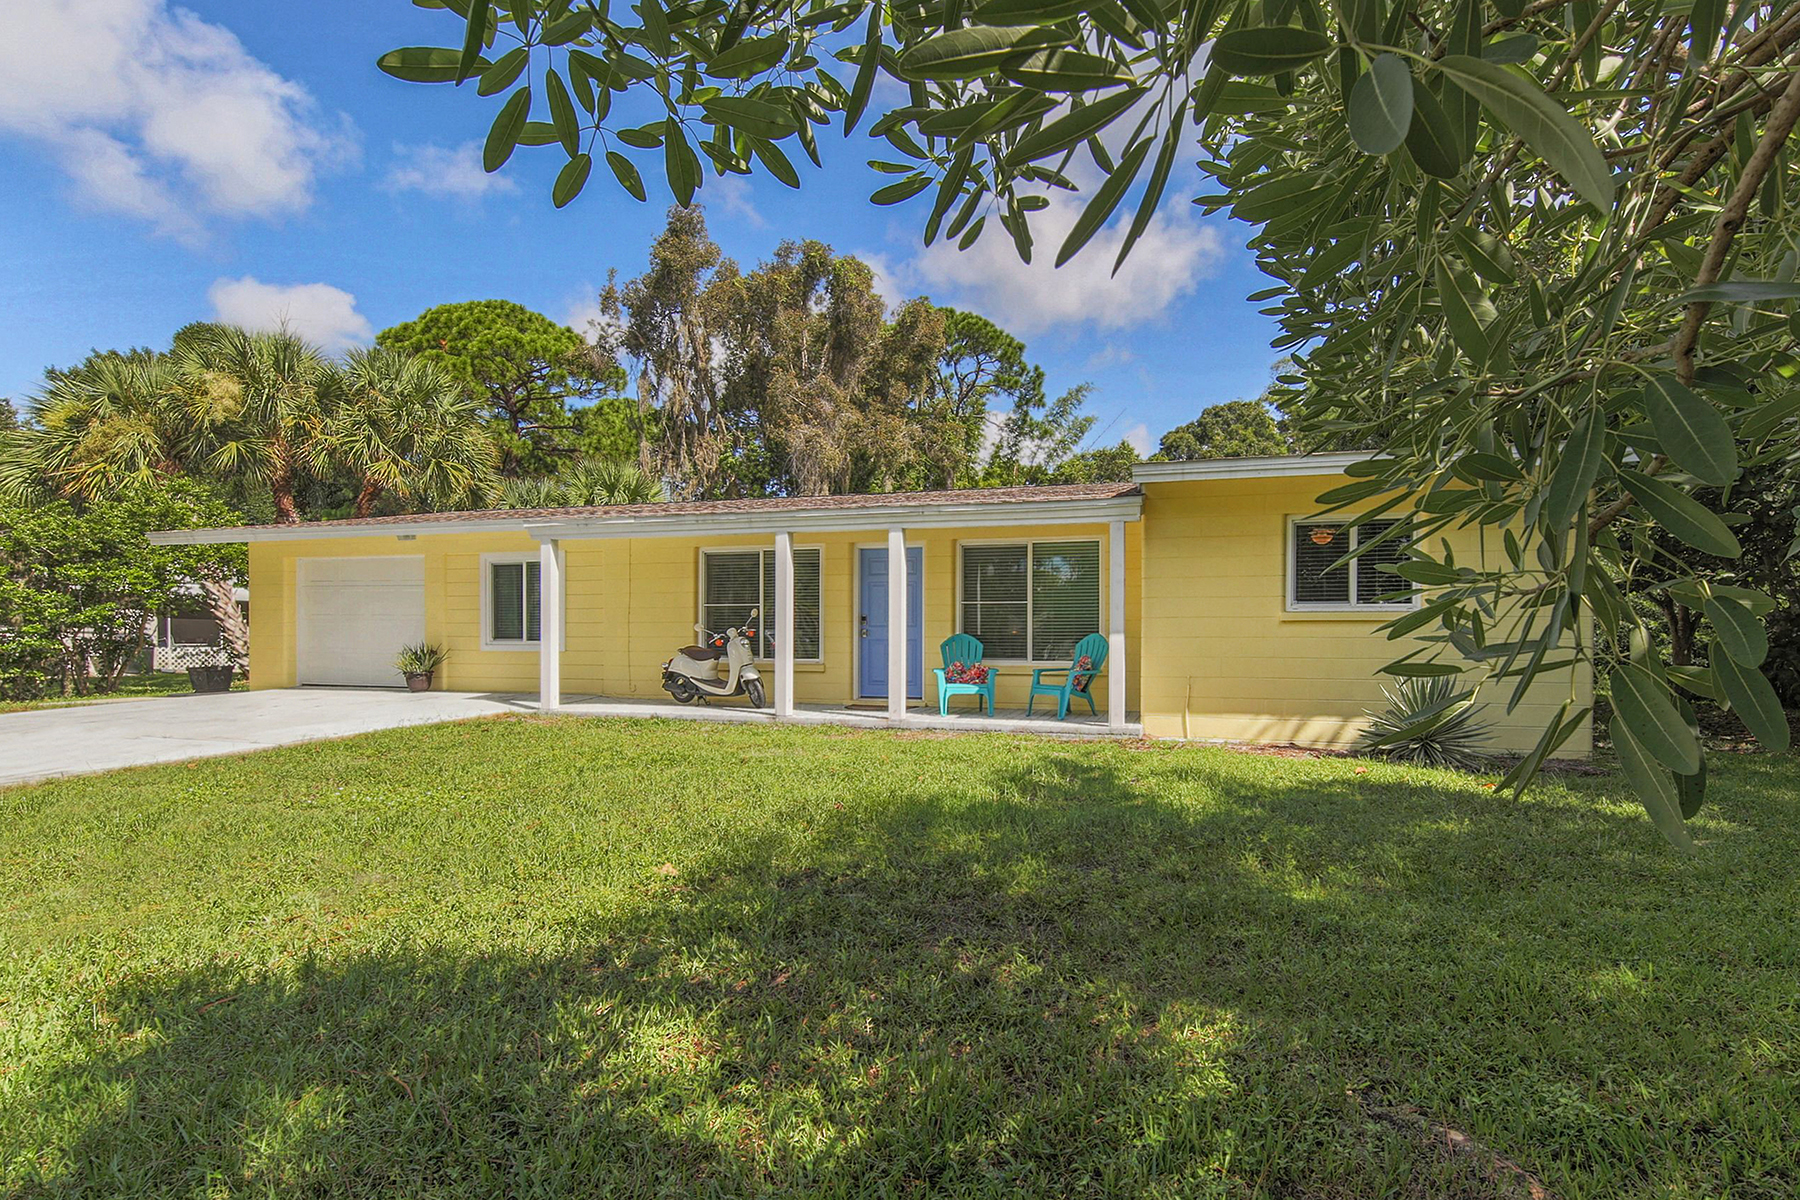 Single Family Home for Sale at NOKOMIS 141 Gulf Ave Nokomis, Florida, 34275 United States